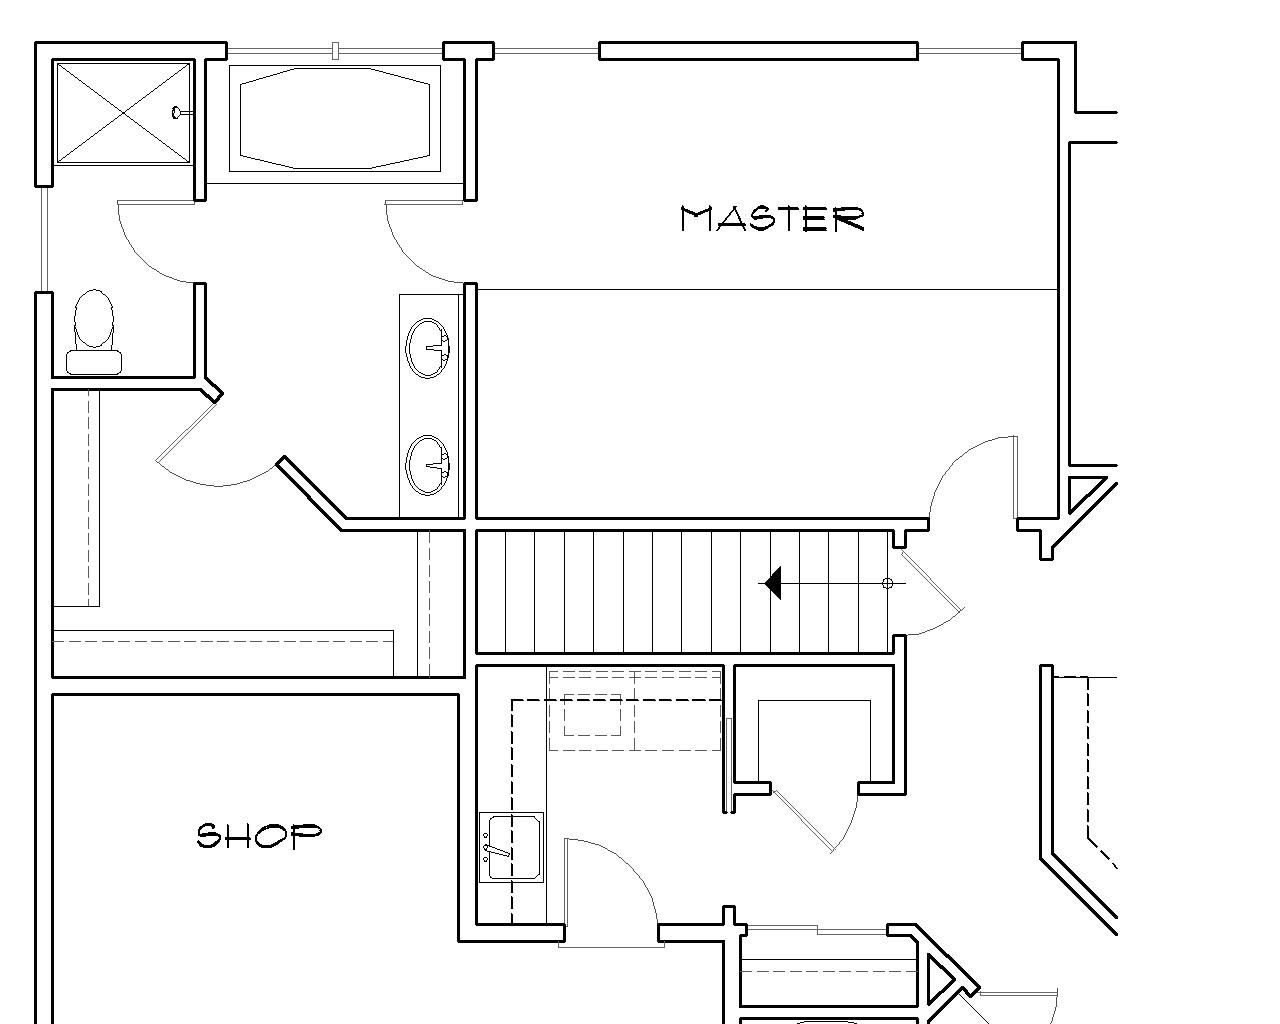 Basement Stair Location Basement House Plans Stairs Floor Plan Floor Plan Design